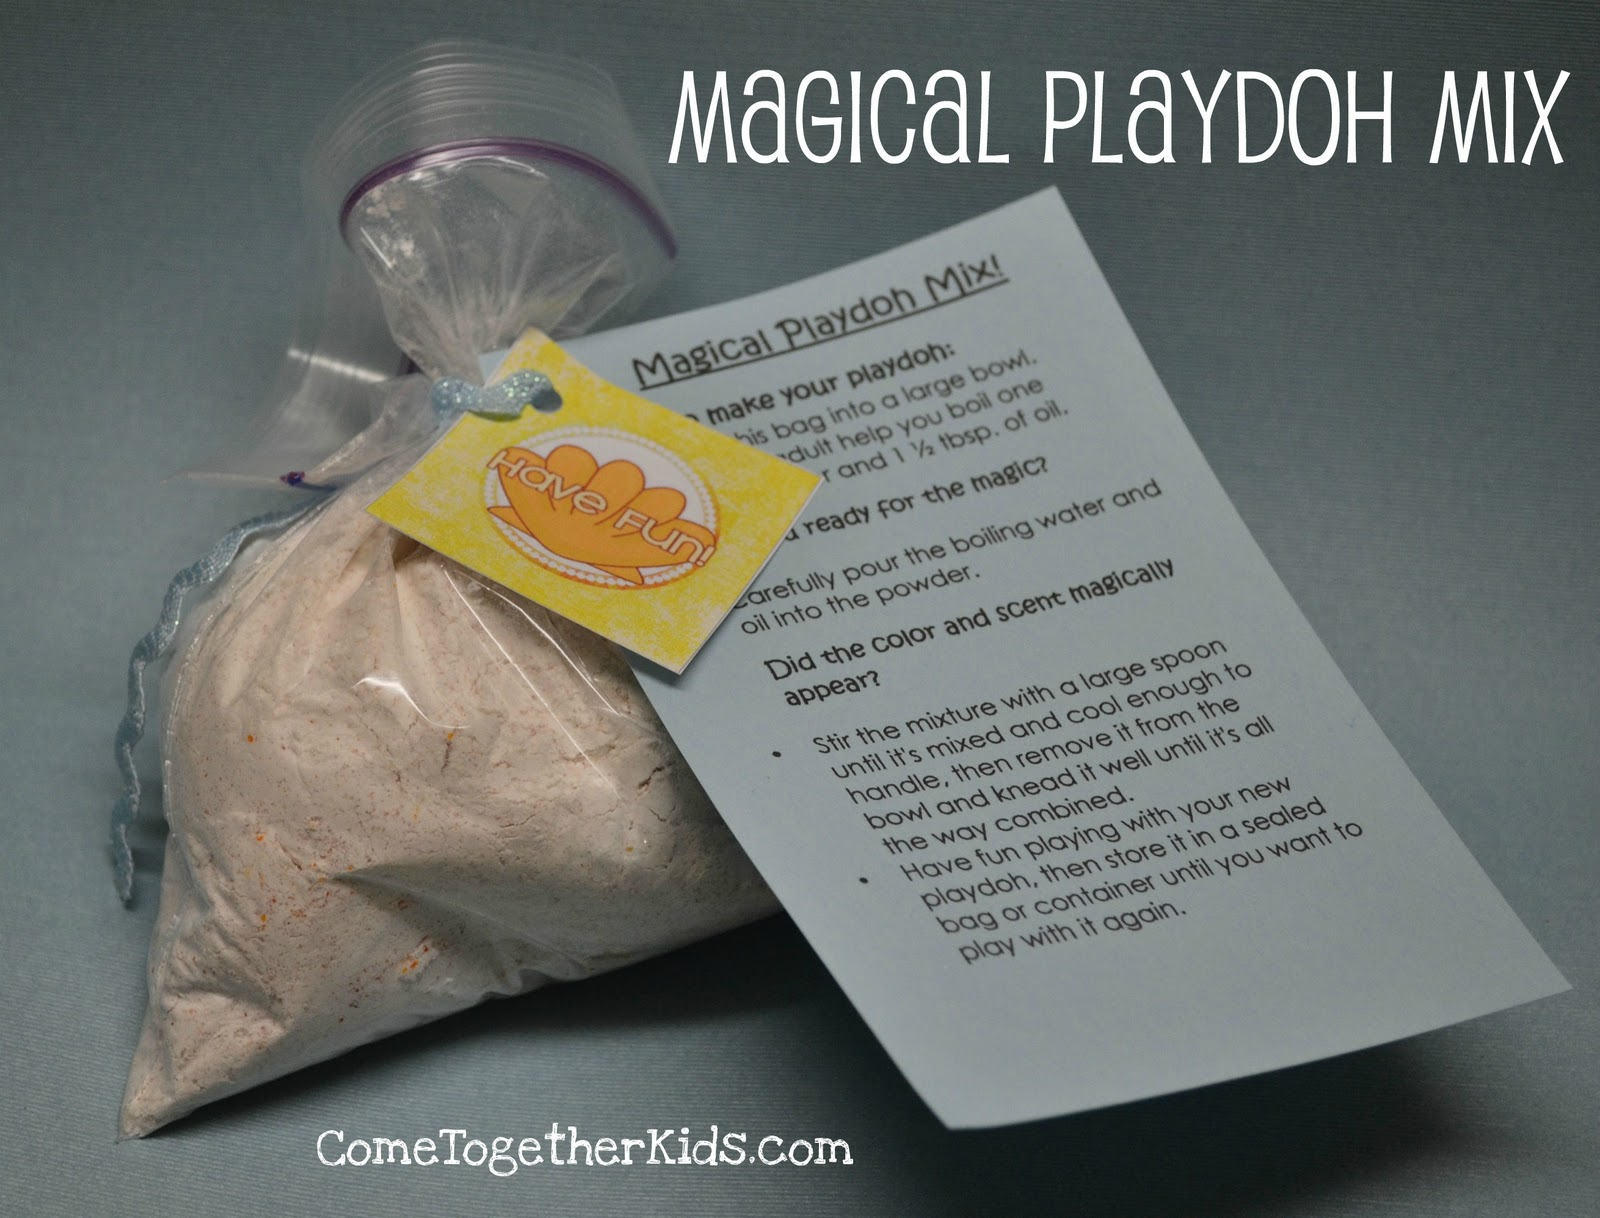 1 Magical Playdoh Mix